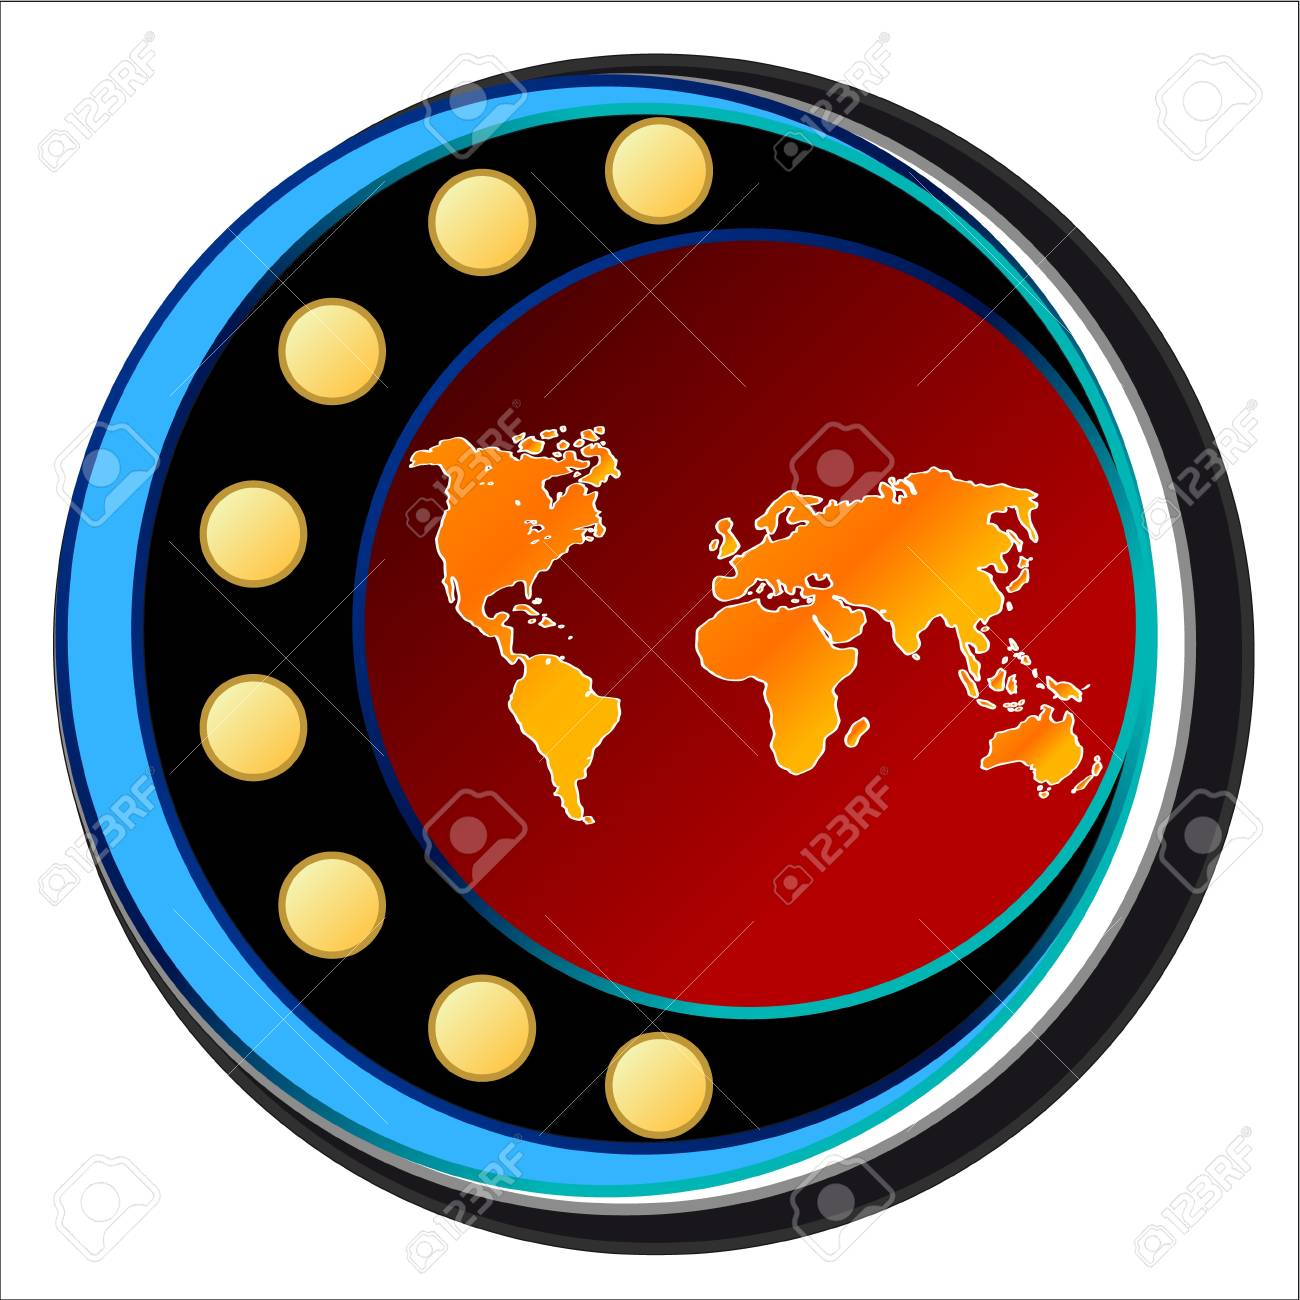 World icon located on a white background Stock Vector - 15735747